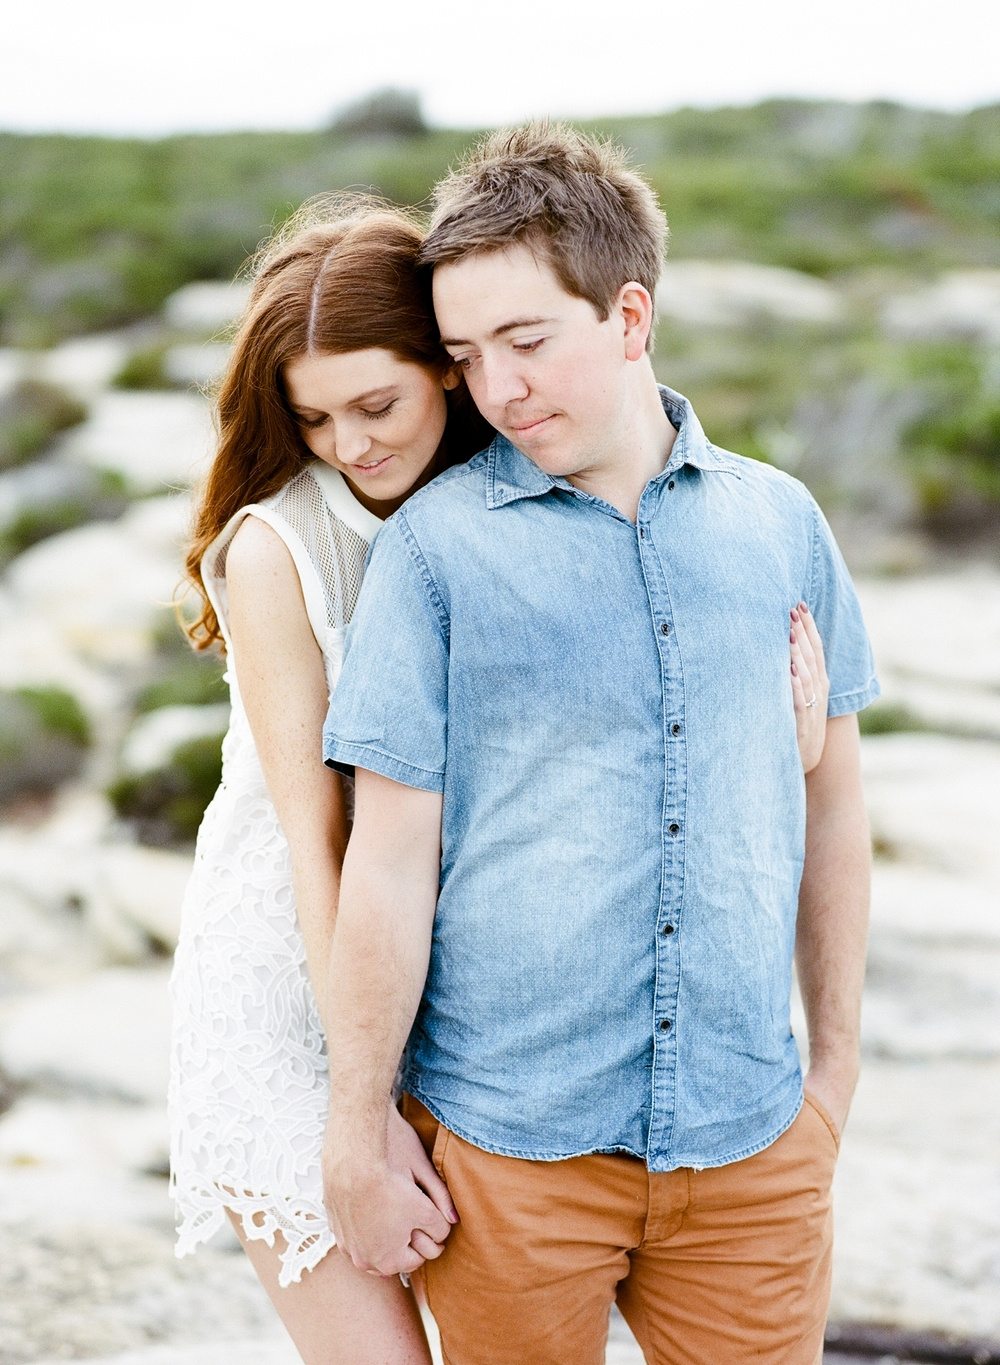 Sydney engagment shoot by Wedding photographer Glen Edwards_0704.jpg